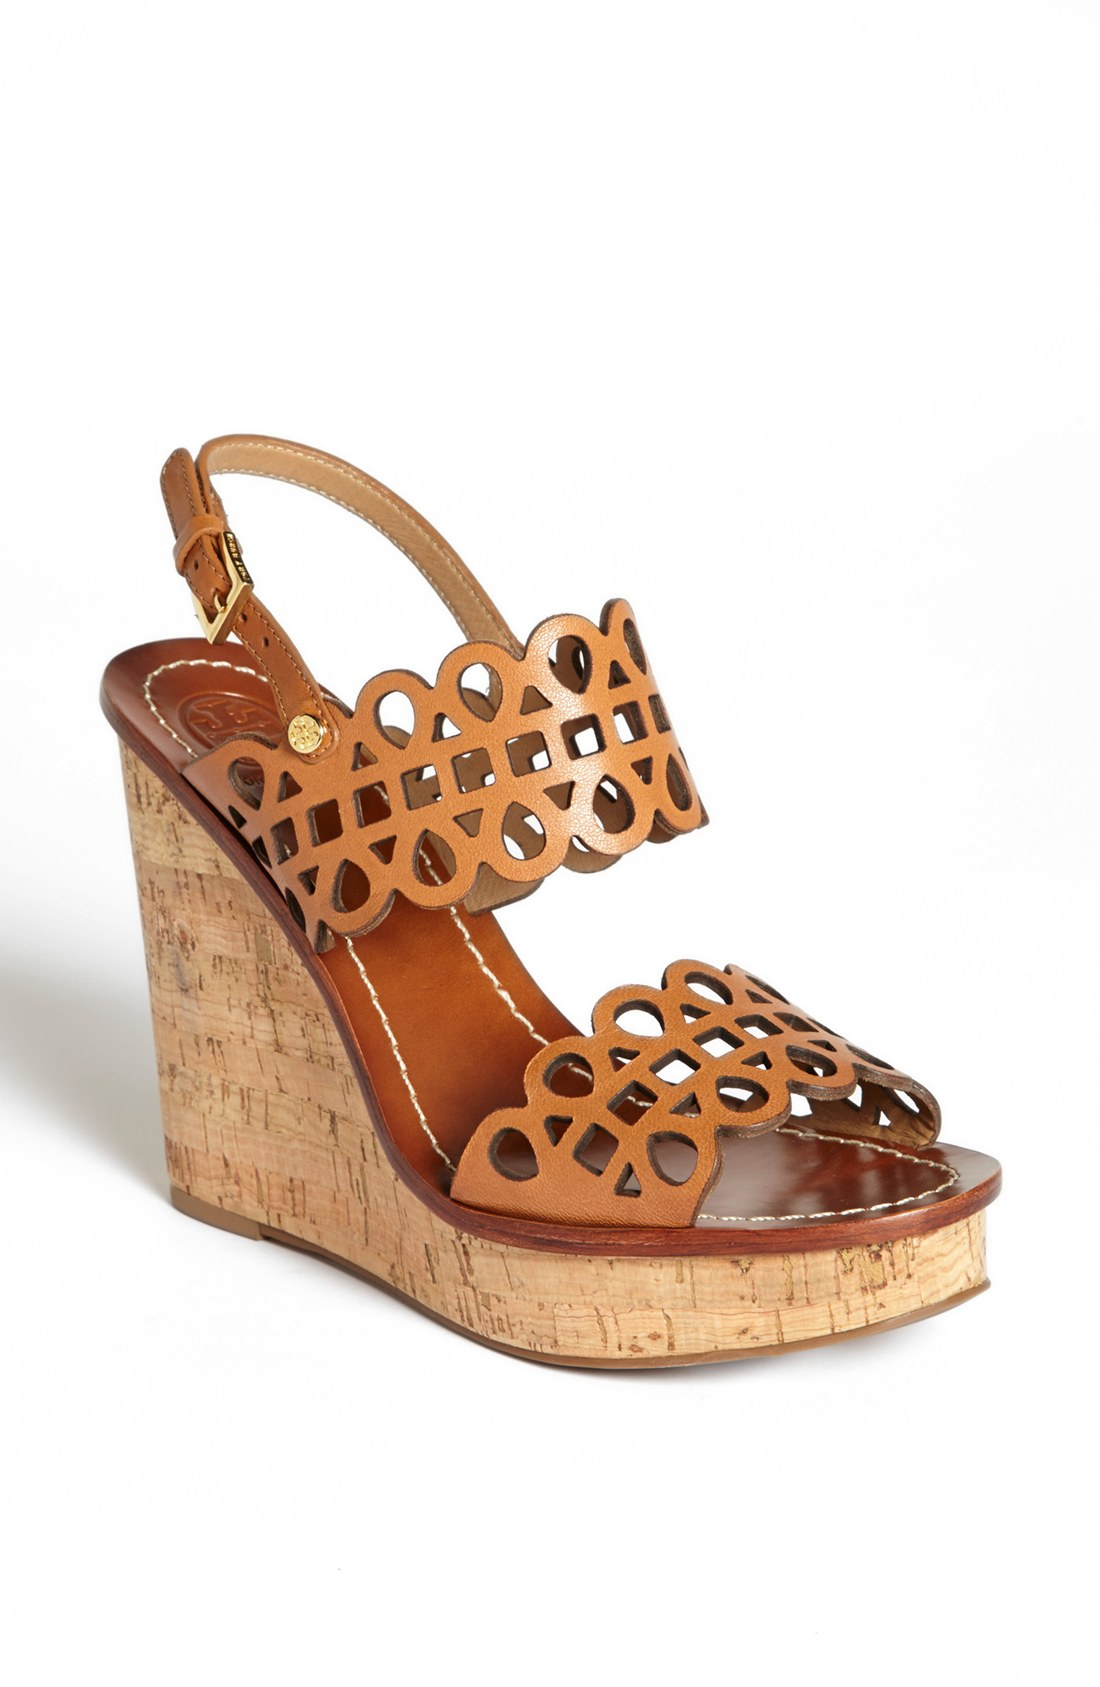 tory burch nori wedge sandal in brown vintage vachetta. Black Bedroom Furniture Sets. Home Design Ideas